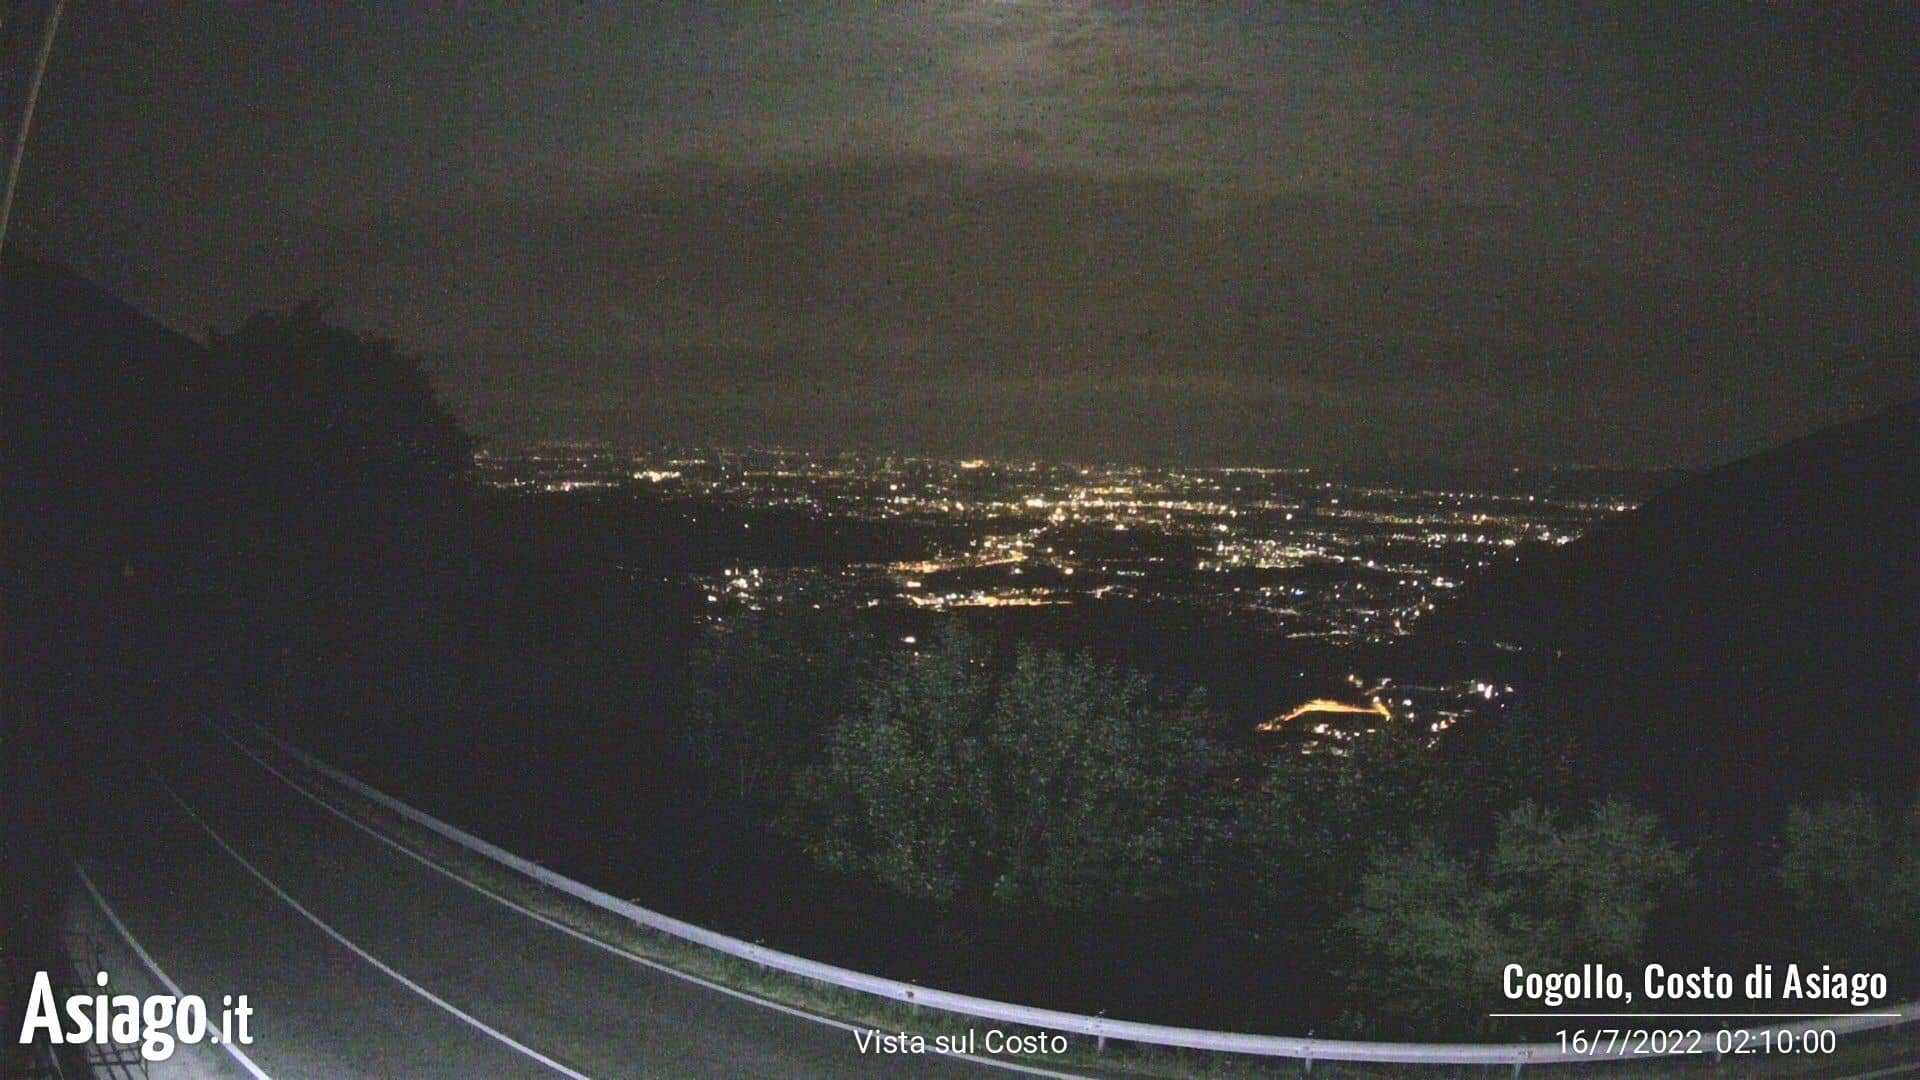 Live webcam of Asiago.It on the road of the cost